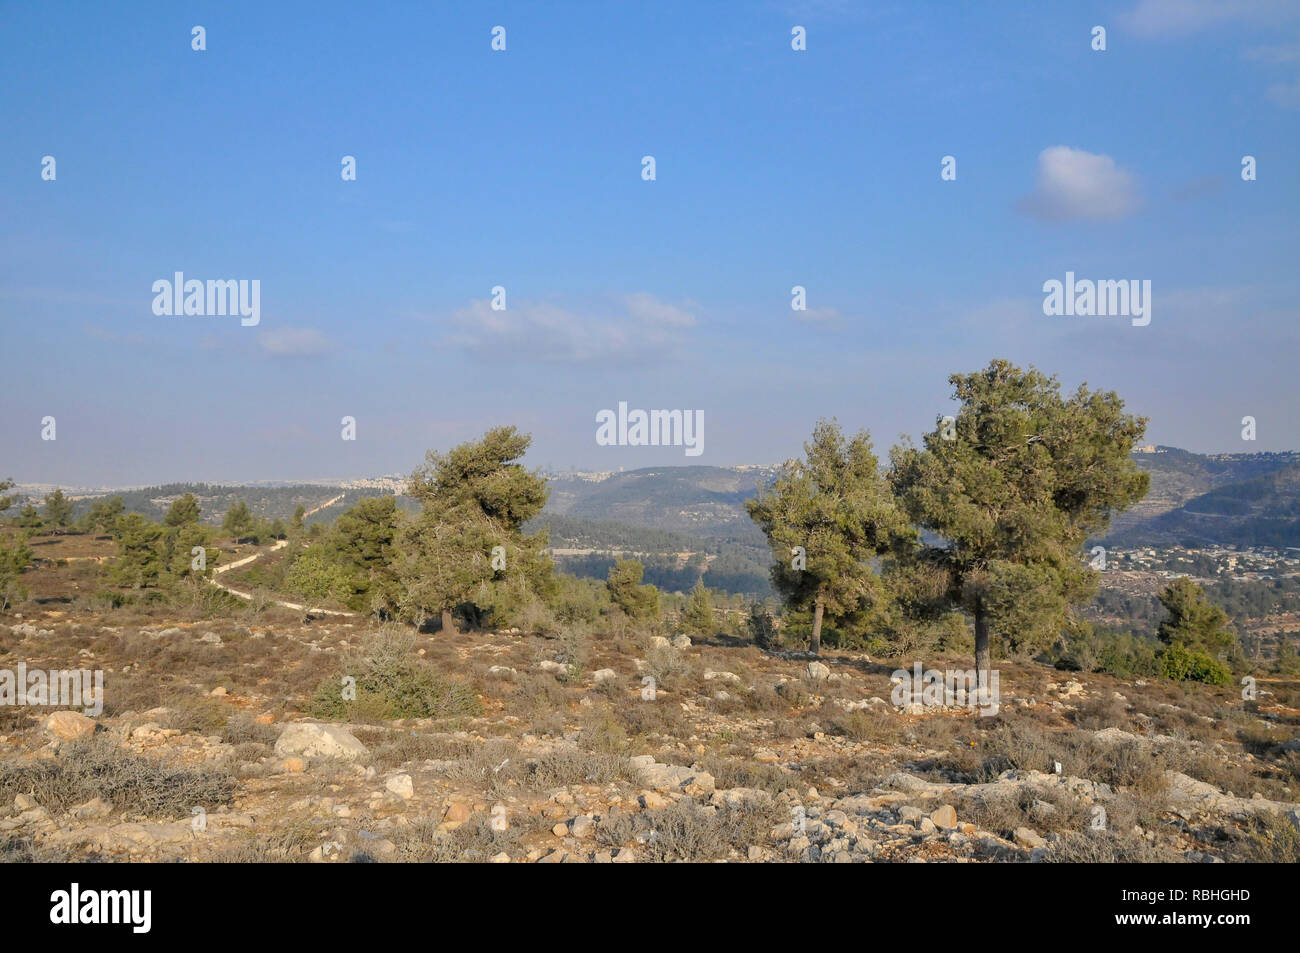 Pinus halepensis, commonly known as the Aleppo pine, is a pine native to the Mediterranean region. Its range extends from Morocco, Algeria and Spain n - Stock Image